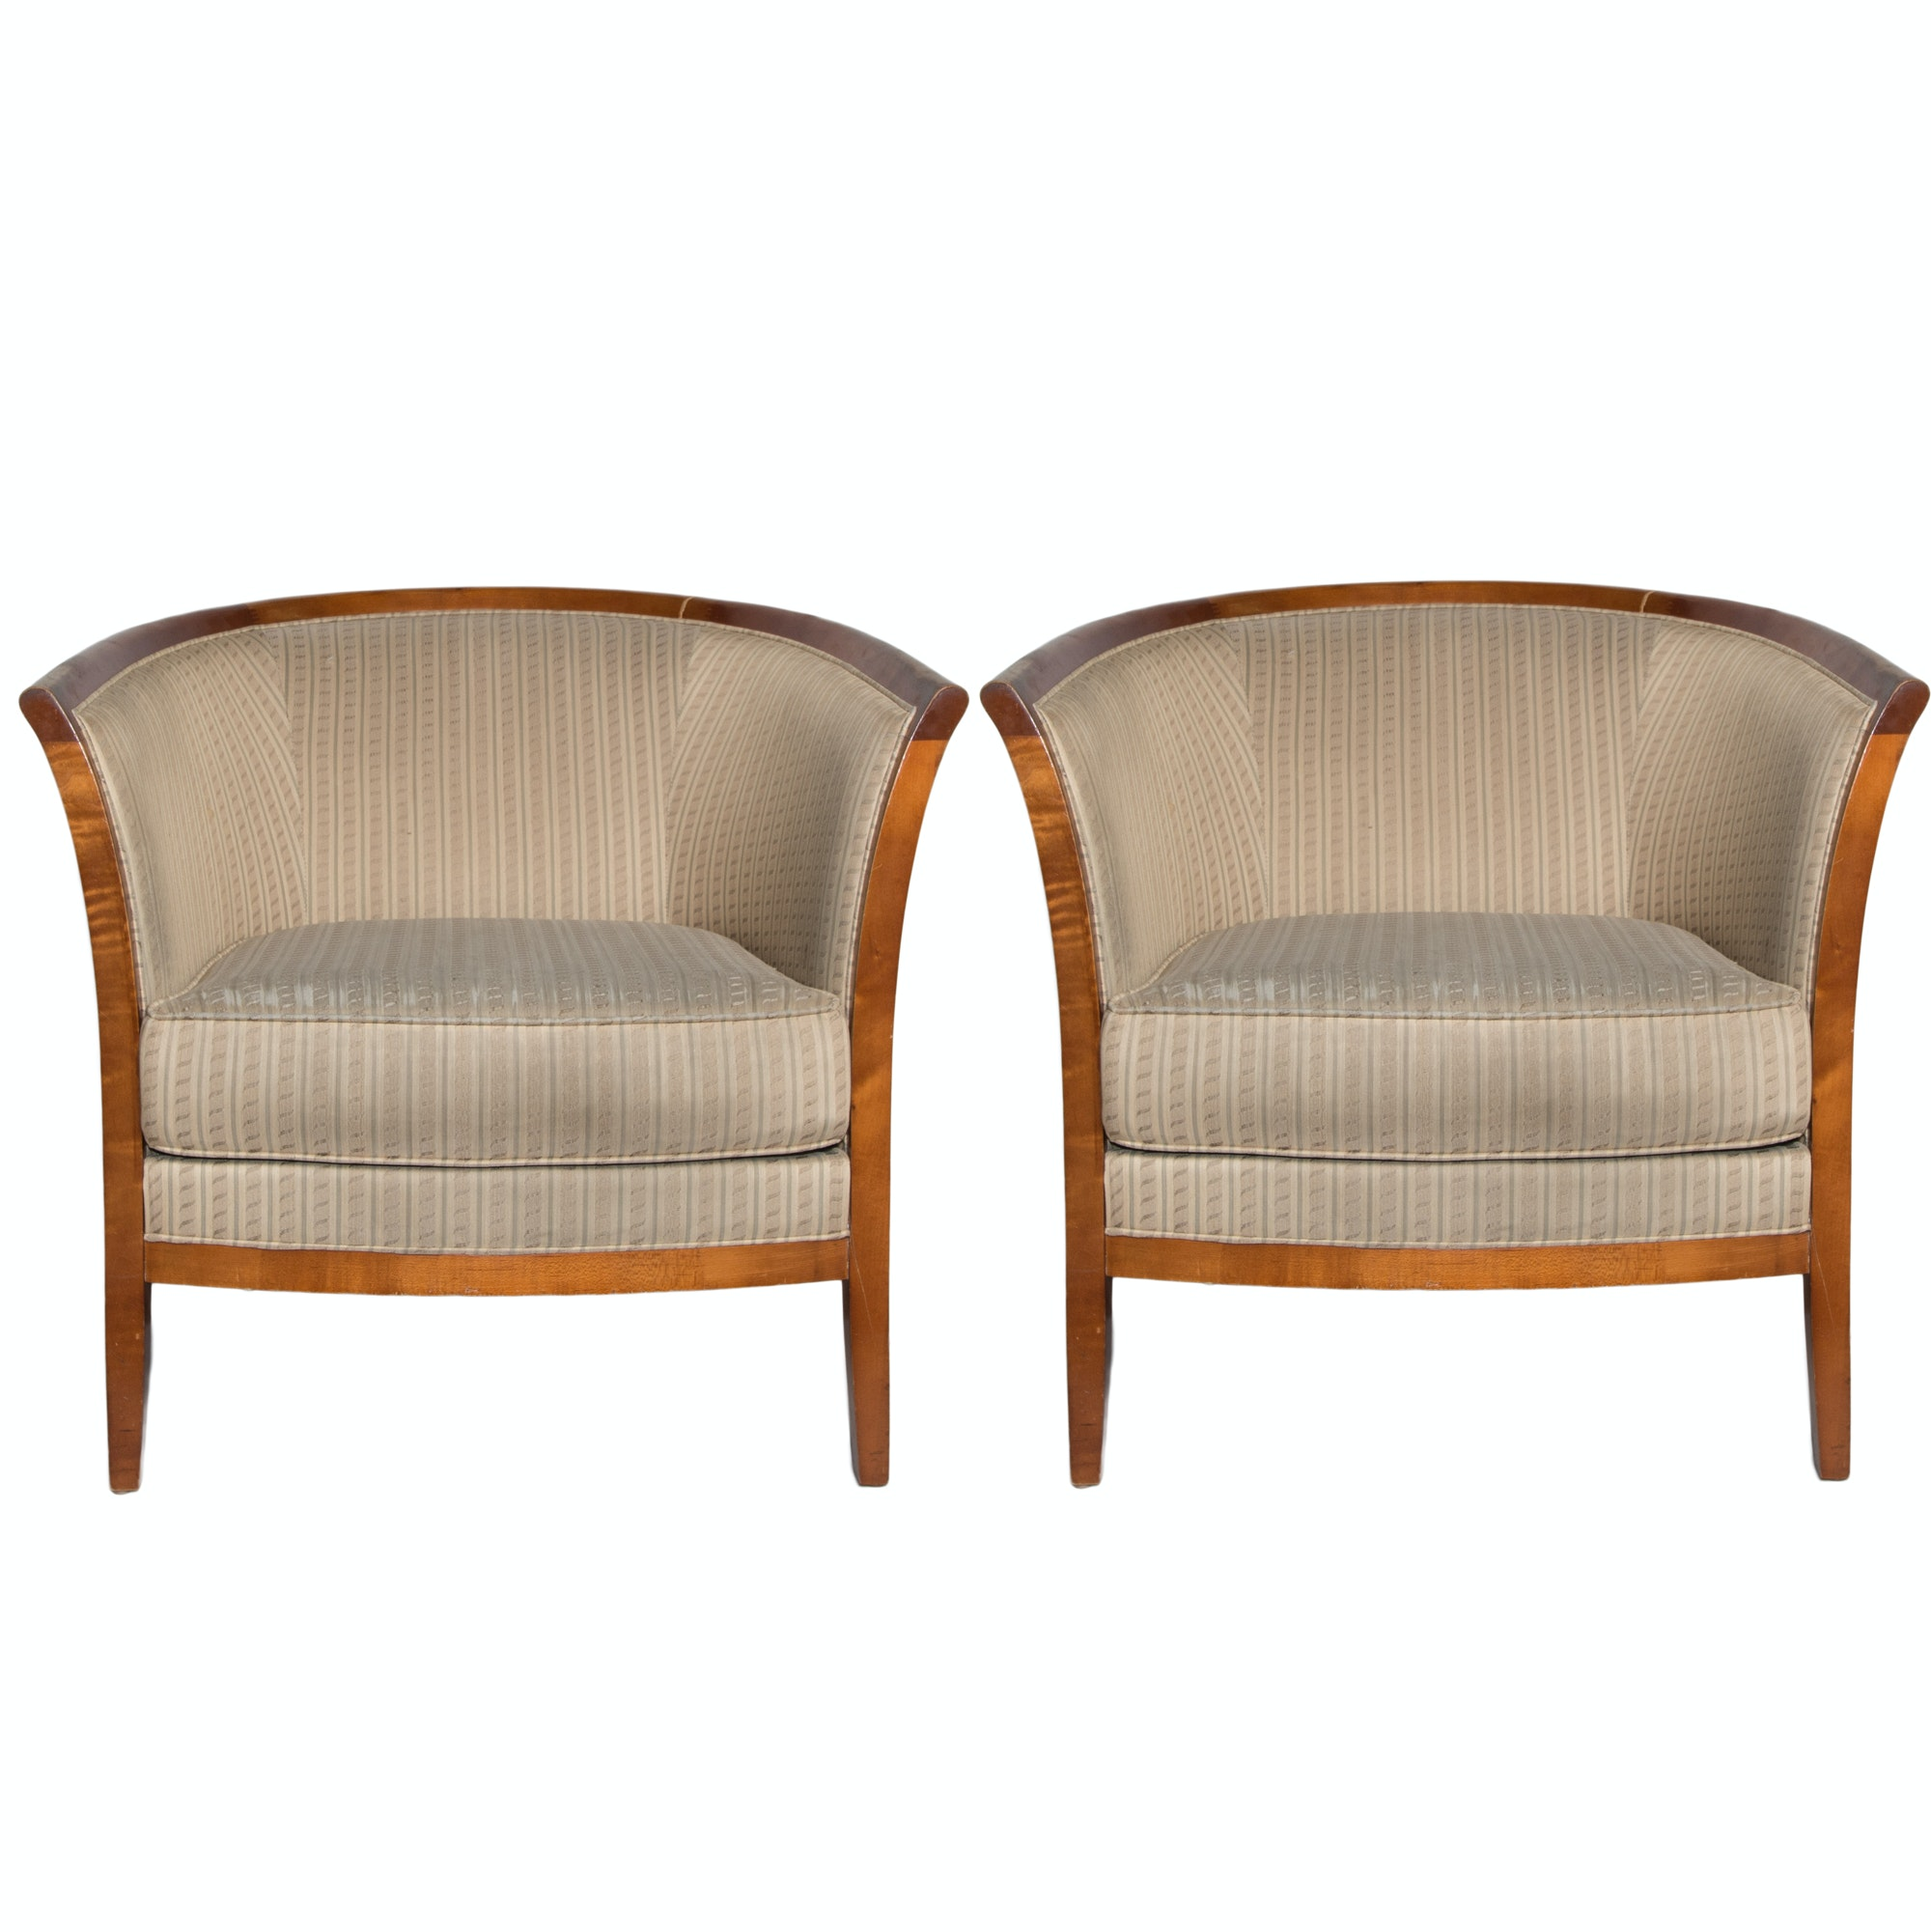 bernhardt barrel chairs 1x1